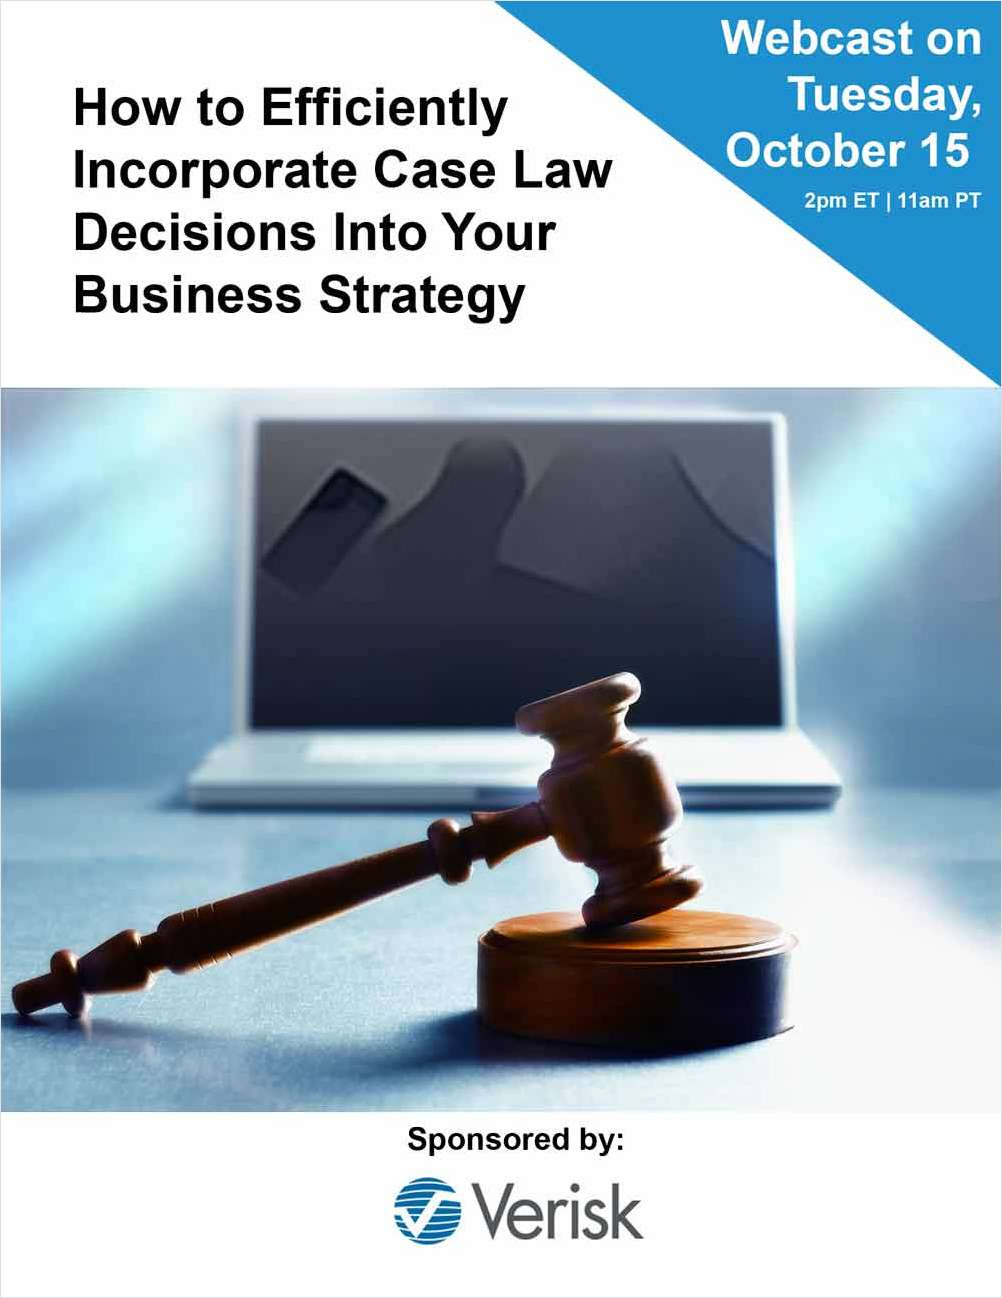 How to Efficiently Incorporate Case Law Decisions Into Your Business Strategy